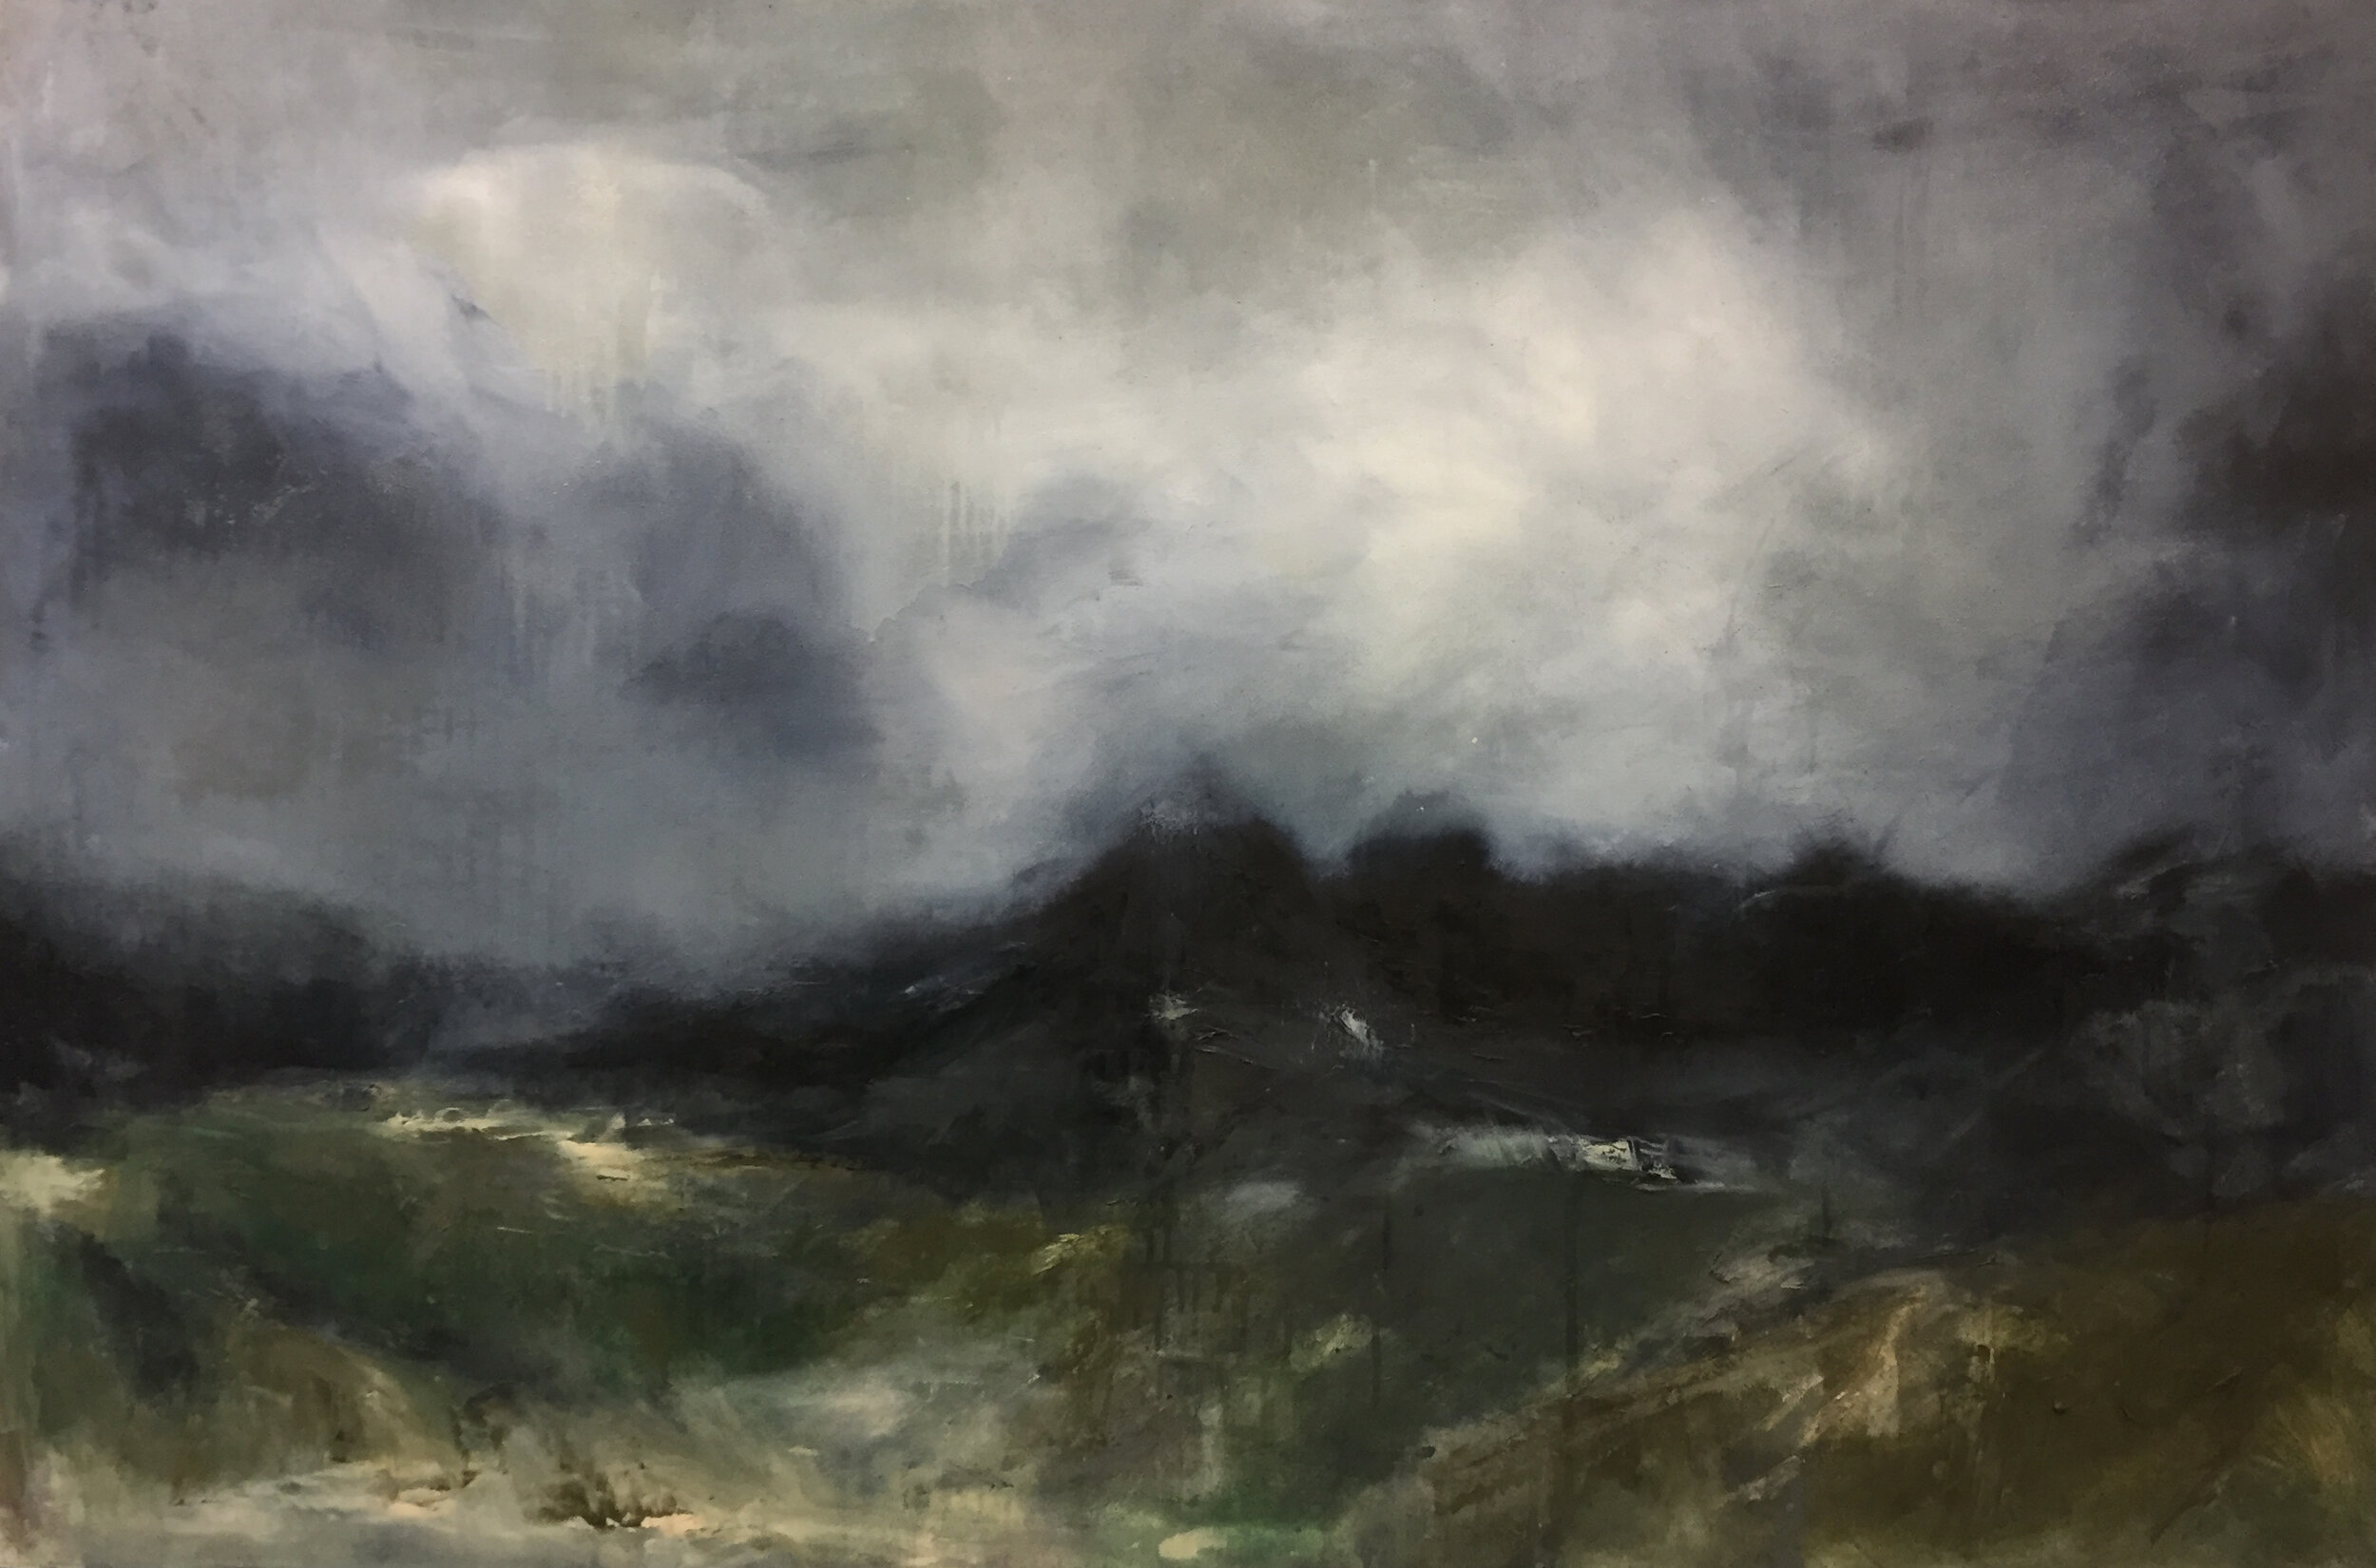 Artist: Lily Rigby  Title: Ascent  Size: 120 x 180 cm  Medium: Oil on canvas  Price: £3500